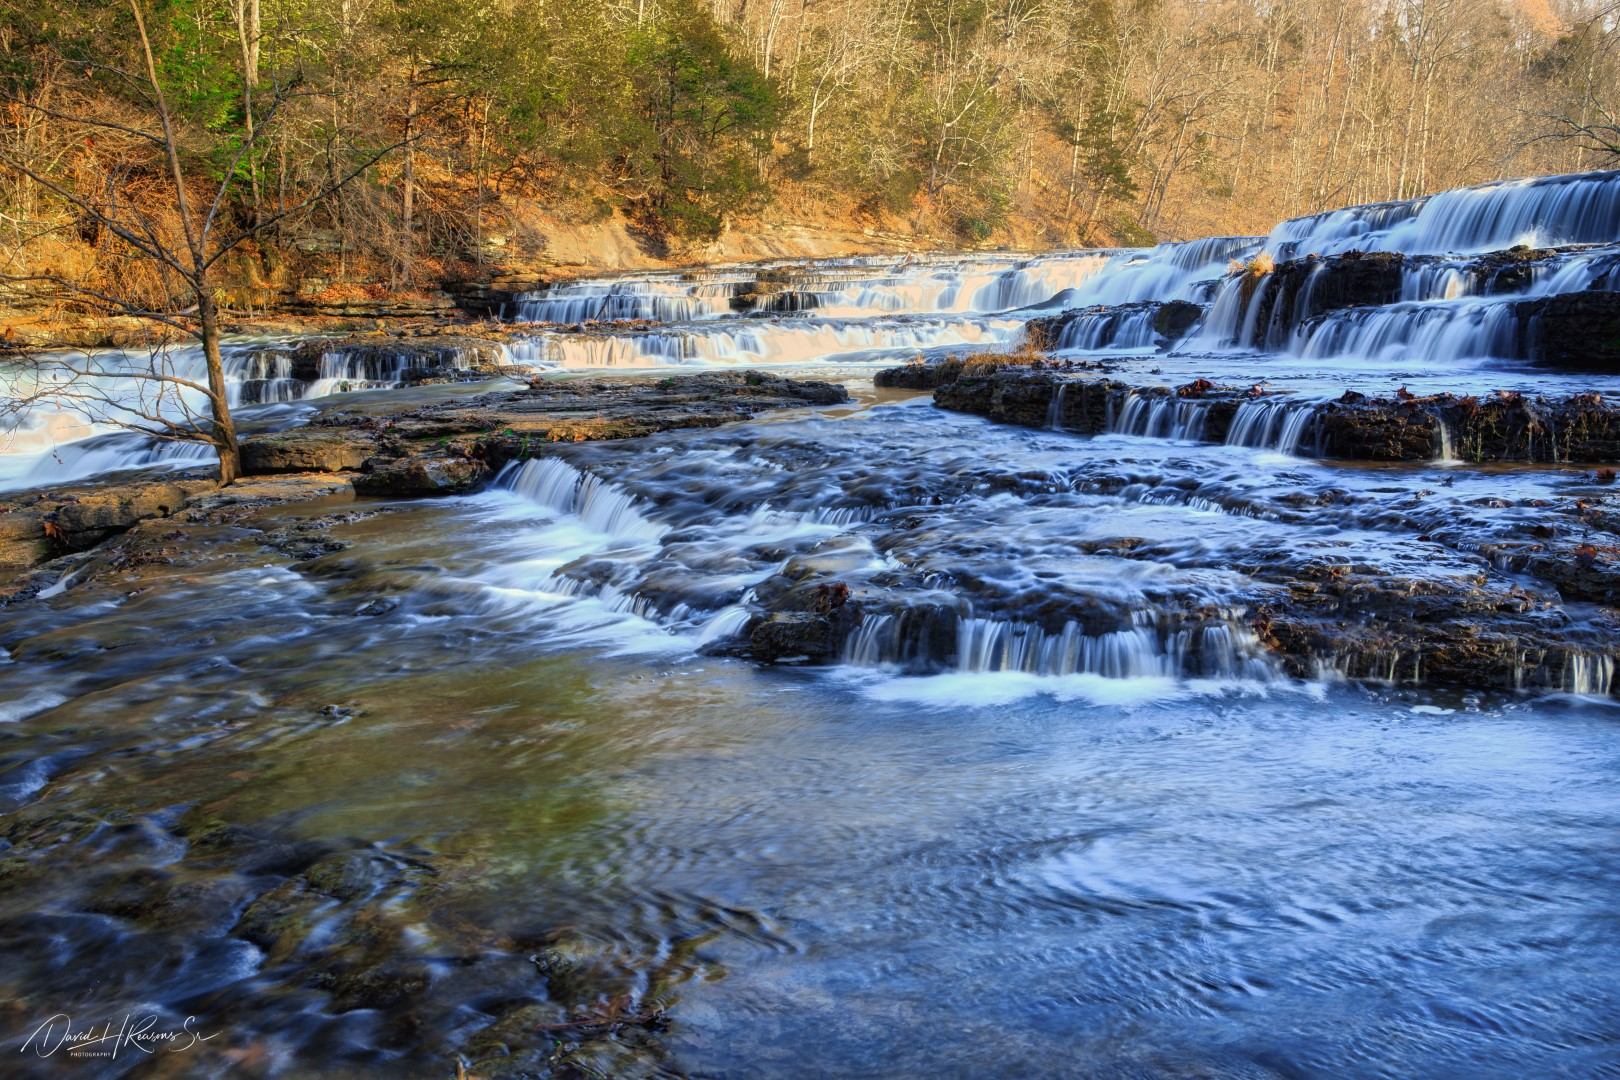 Another view of the cascades at Burgess Falls